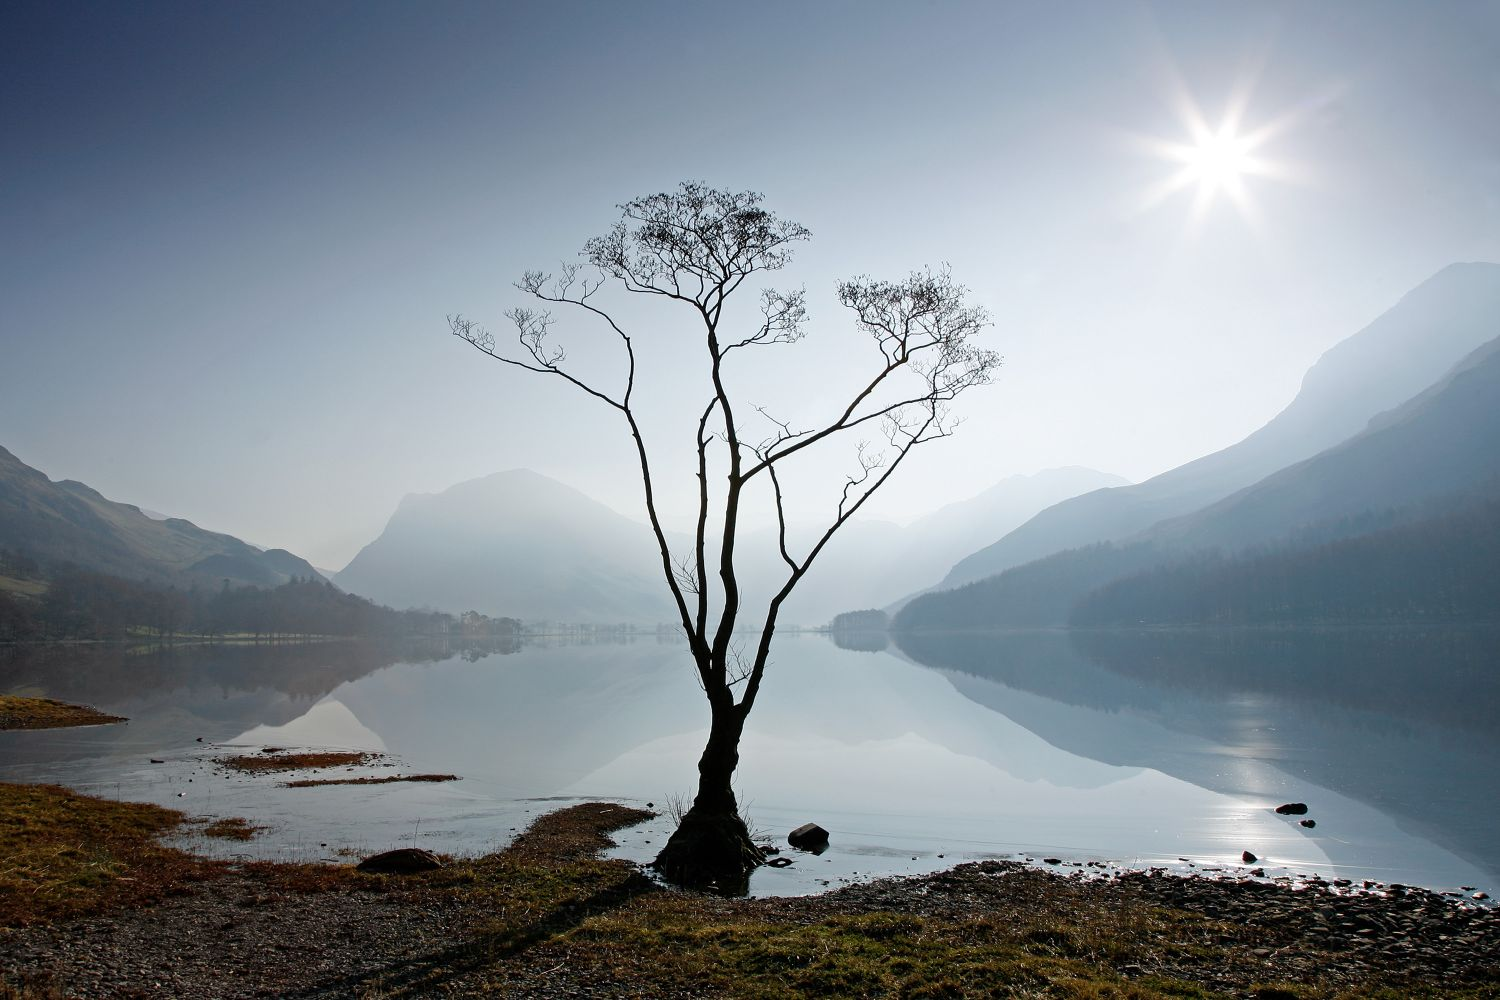 Morning Mist on Buttermere and the famous lone tree that stands on its northern shore